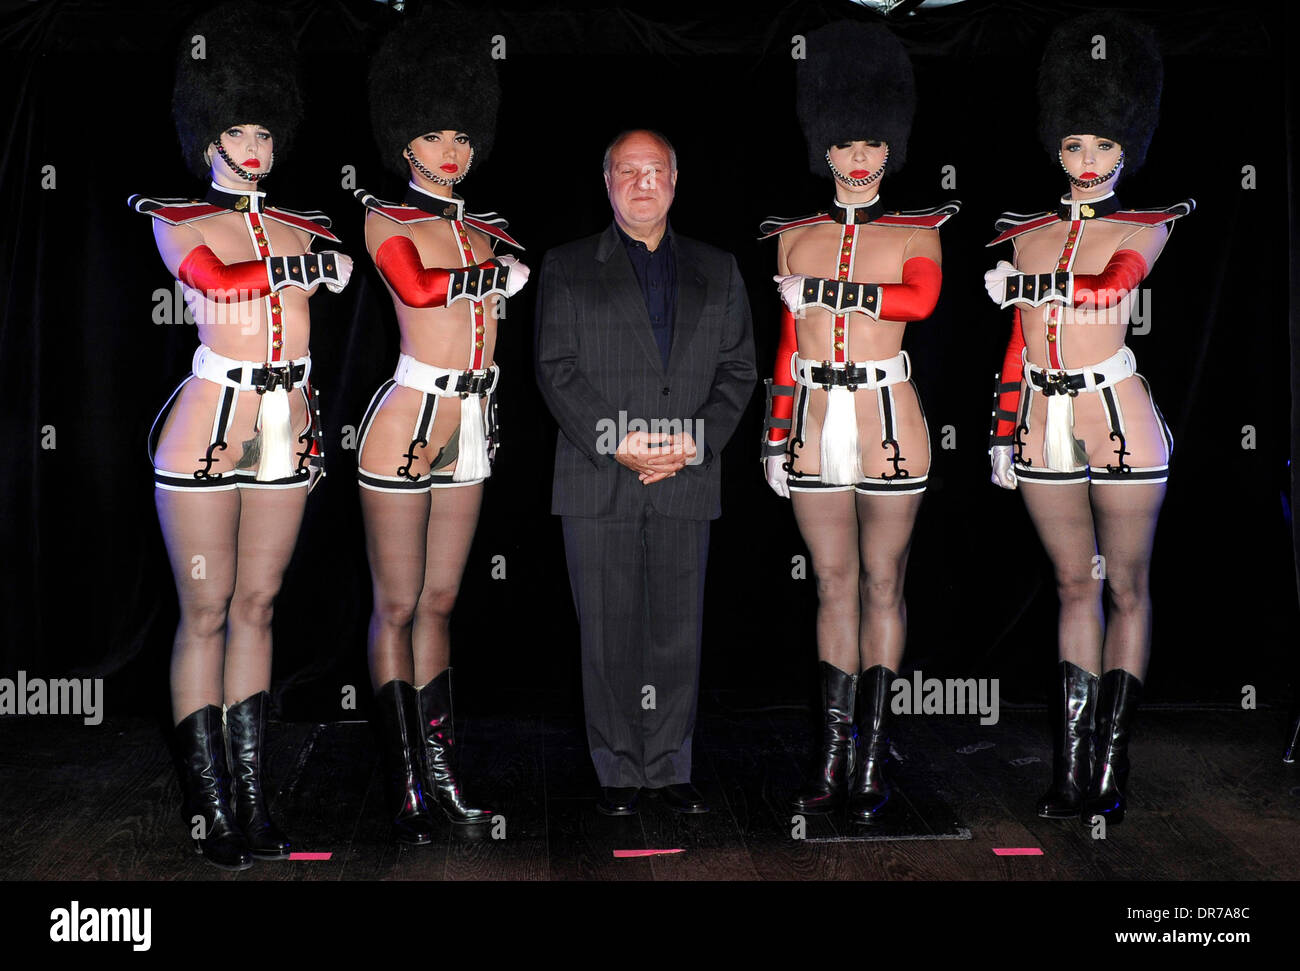 Harvey Goldsmith CBE with the cast Photocall for Le Crazy Horse de Paris - u0027Forever Crazyu0027 show held at The Arts Club London England - 12.06.12 & Harvey Goldsmith CBE with the cast Photocall for Le Crazy Horse de ...